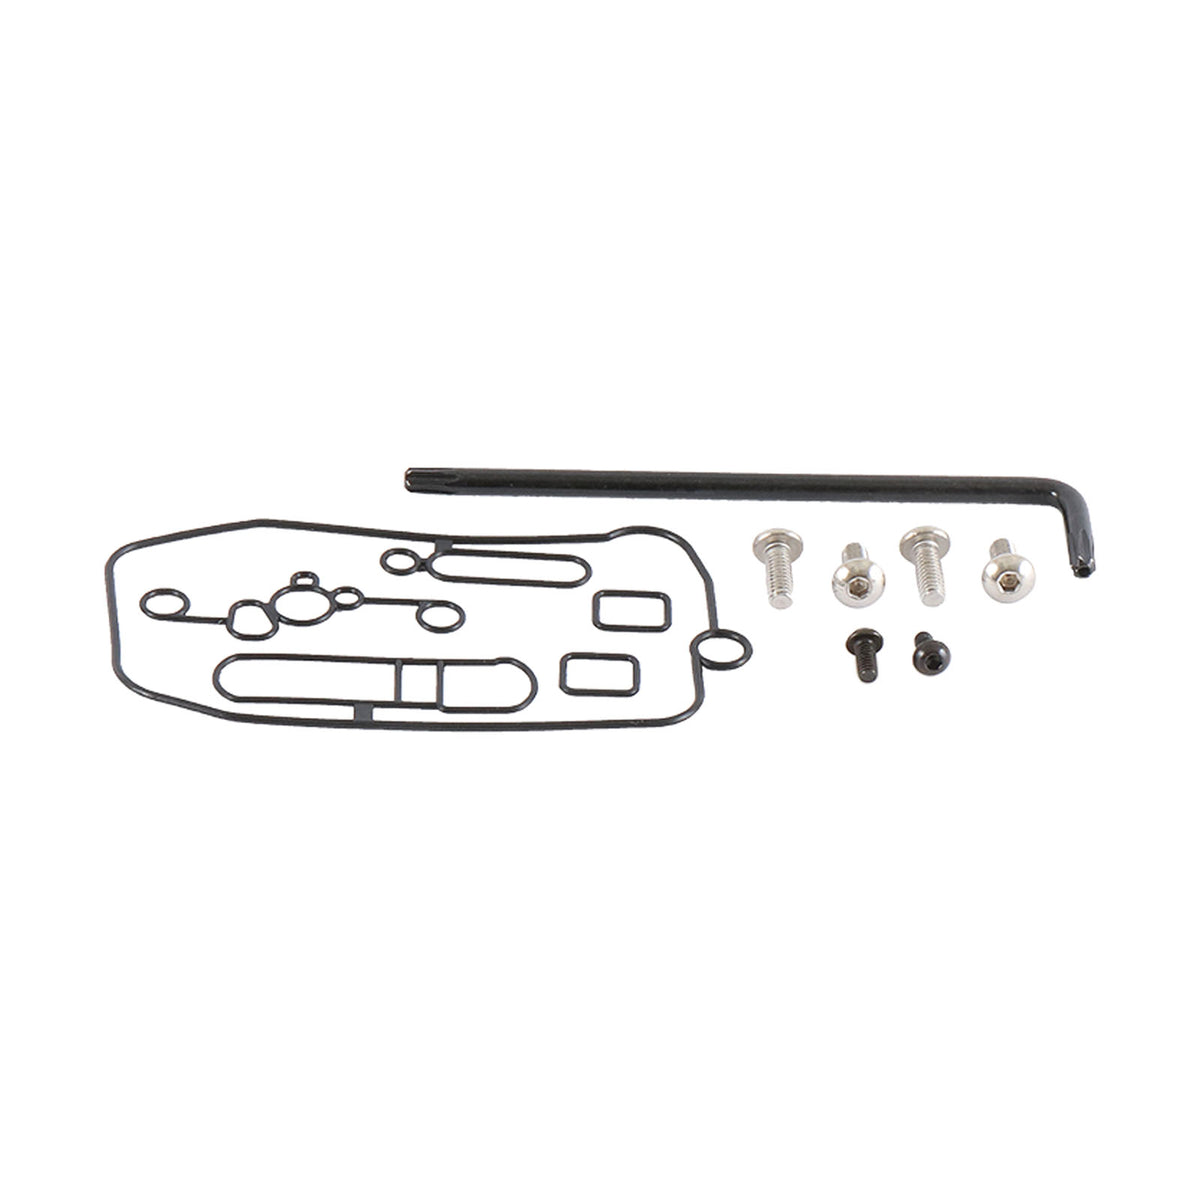 CARBURETOR MIDBODY KIT 26-1512